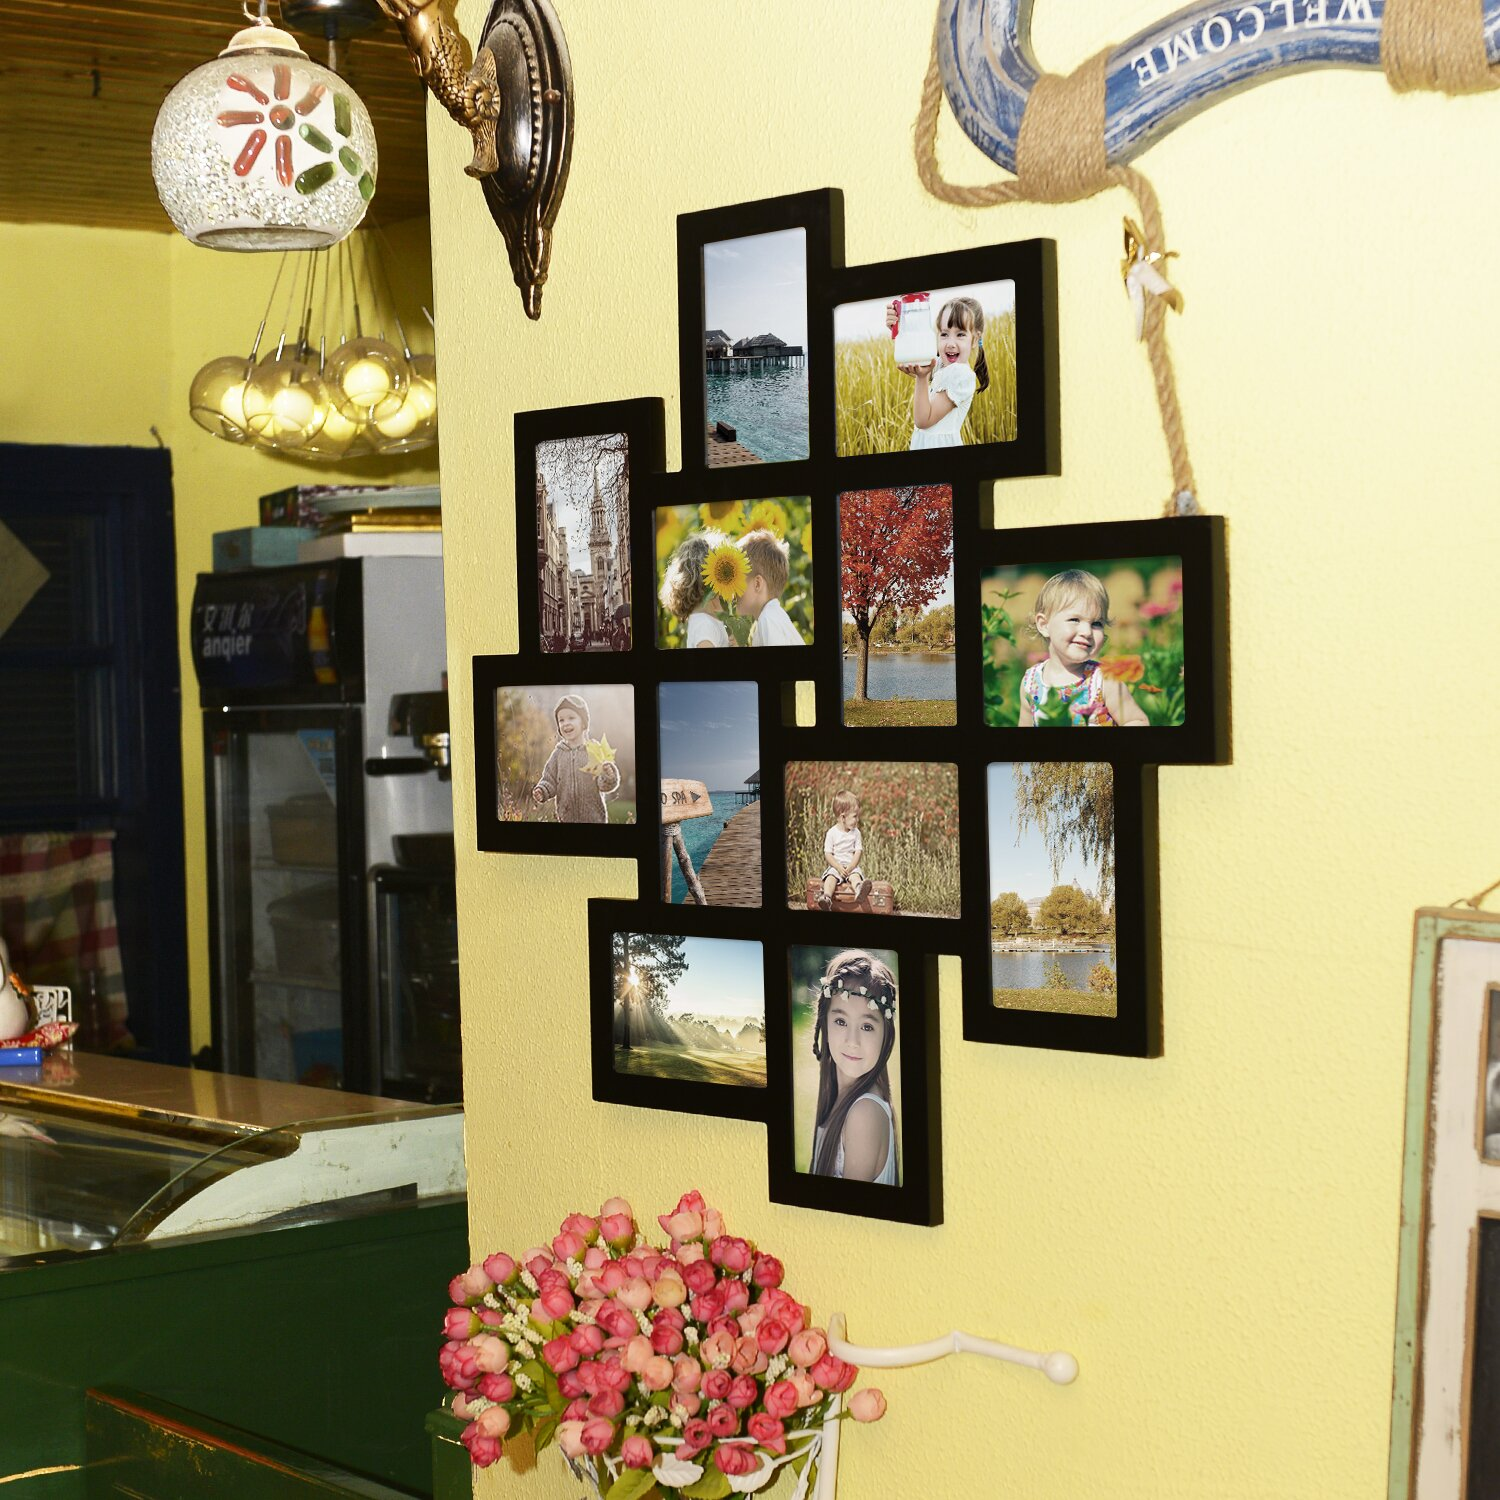 Adecotrading 12 Opening Decorative Wood Photo Collage Wall